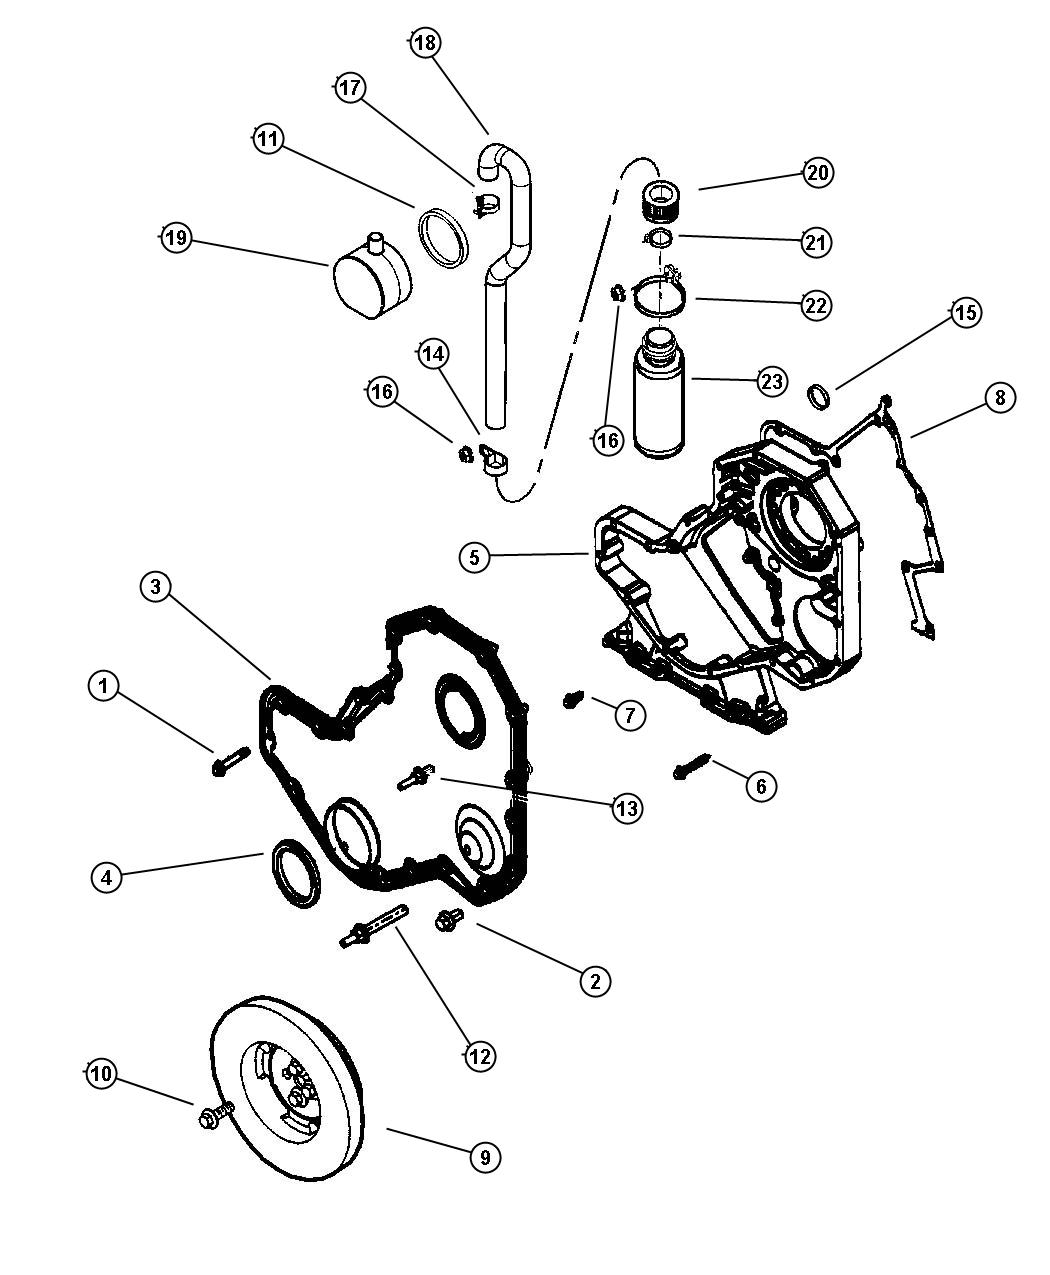 05018185aa on jeep 4 7 engine oil fill diagram